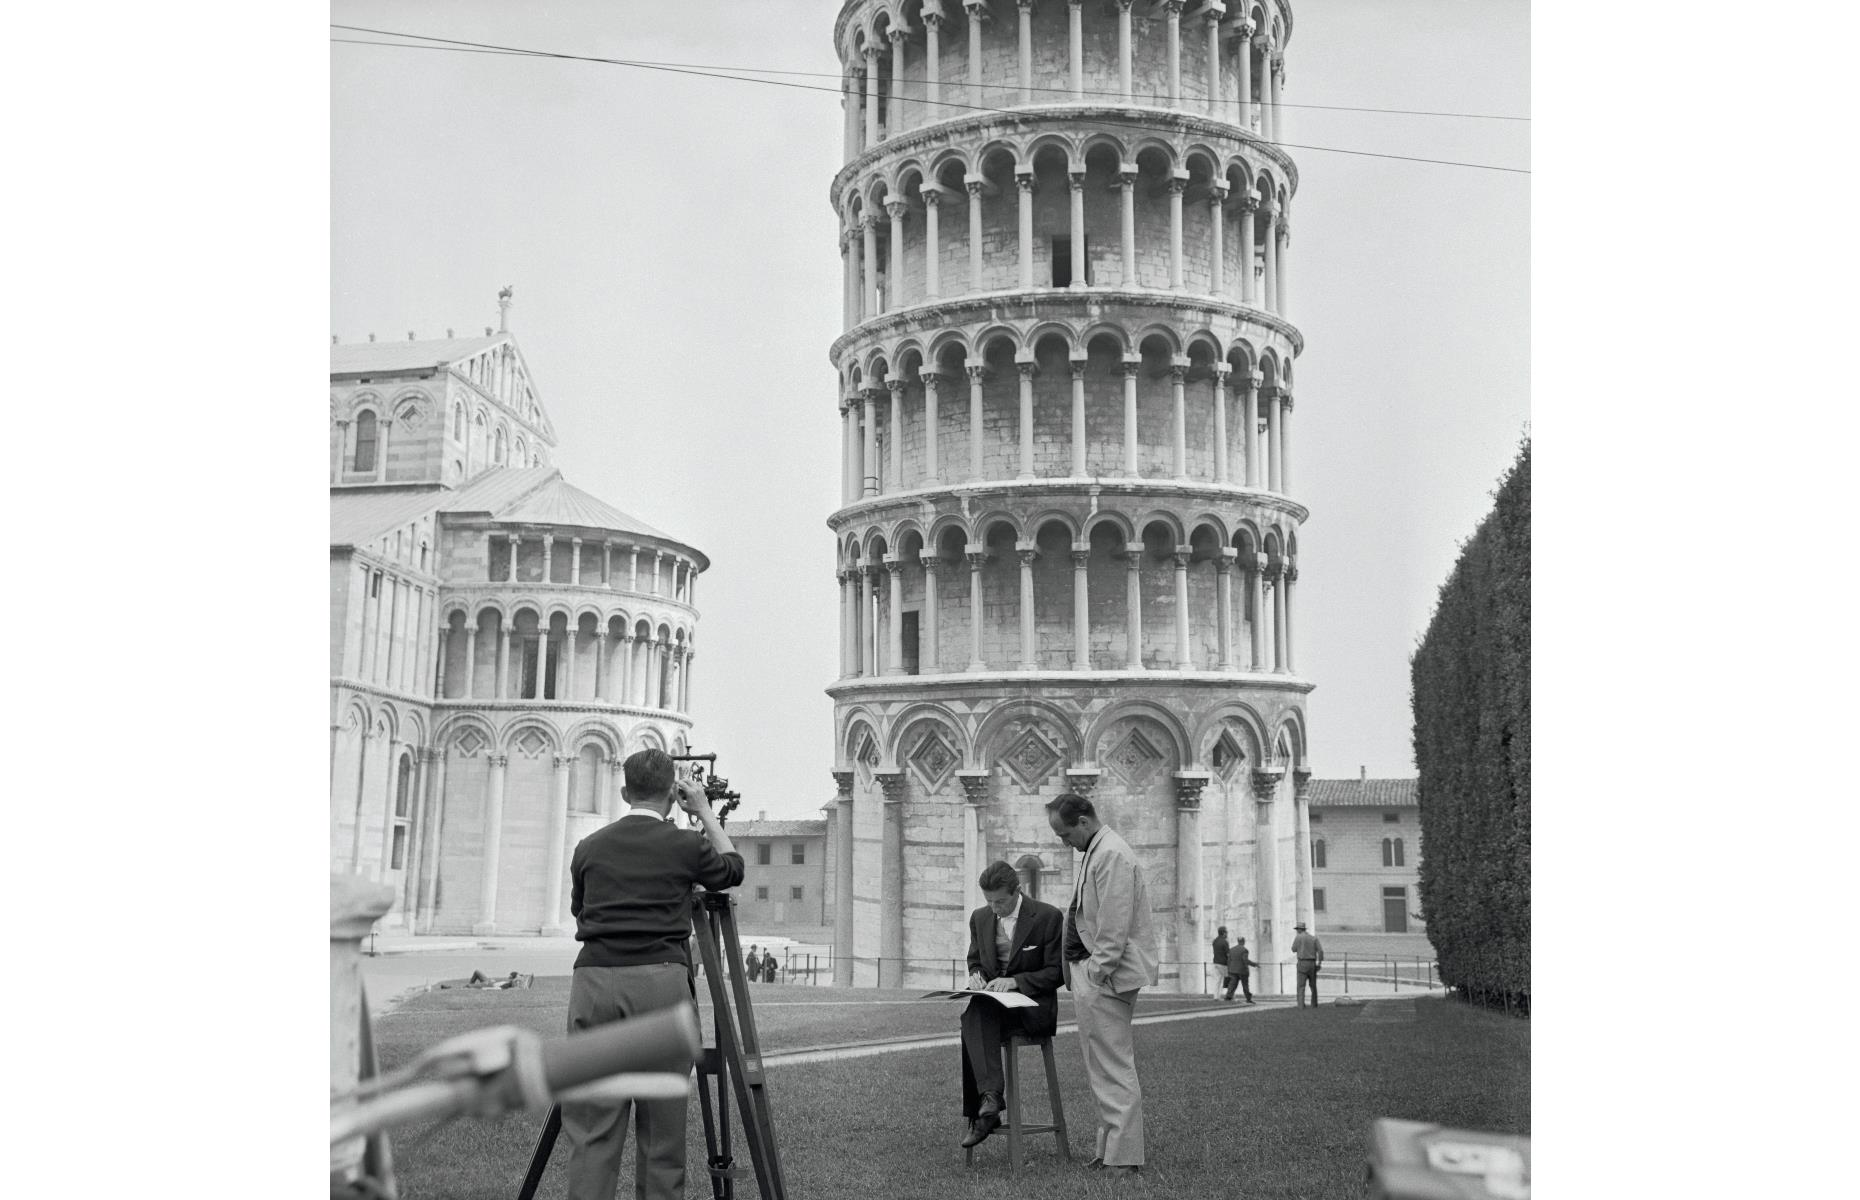 Slide 43 of 51: It's a little-known fact that the Leaning Tower of Pisa, located in the city of Pisa in Tuscany, central Italy, is actually increasing its tilt ever so slightly each year. Pictured here in the 1960s, researchers from the Pisa University Geodesic and Topography Institute carry out an annual measurement to check on the tower's tilt.